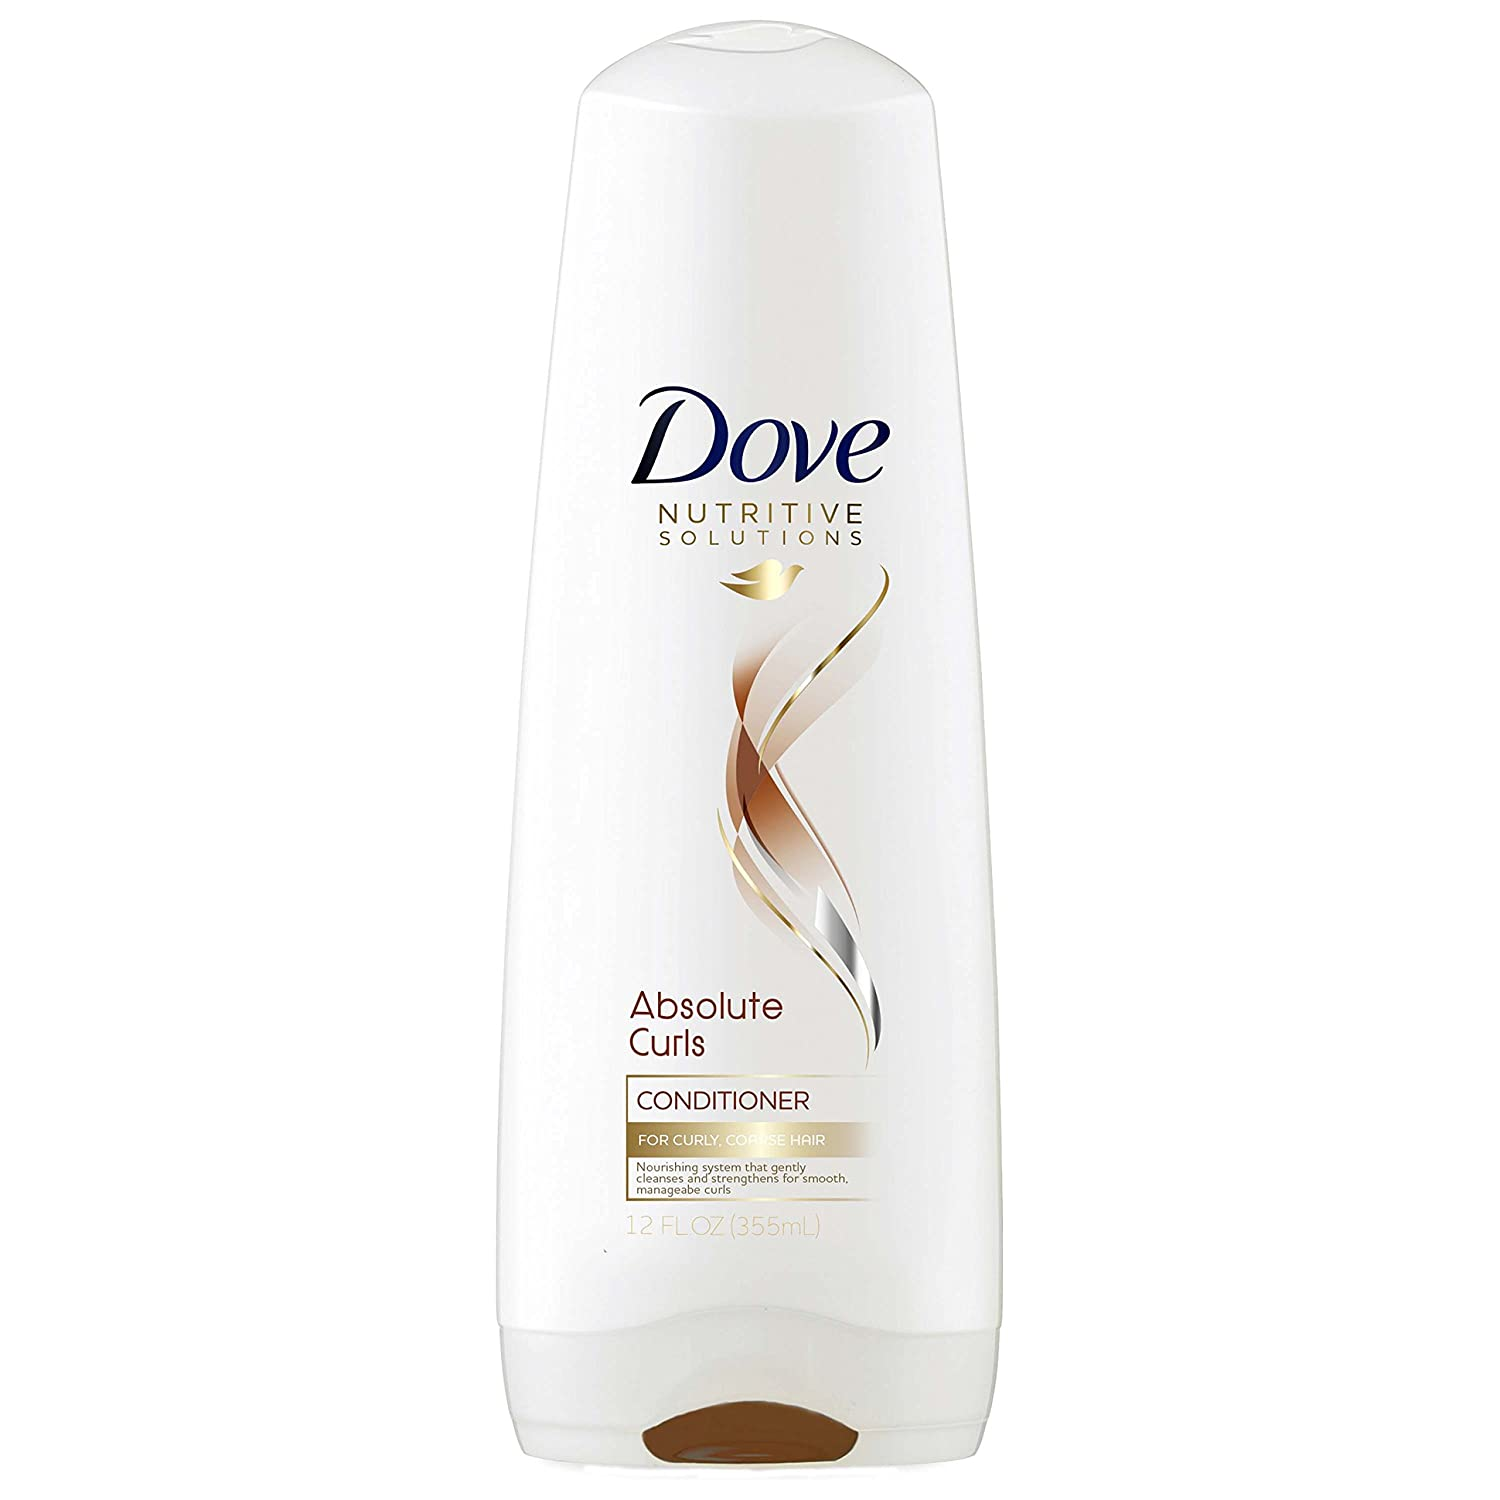 New arrival Dove Nutritive Solutions Conditioner Curls Cheap 12 oz Absolute